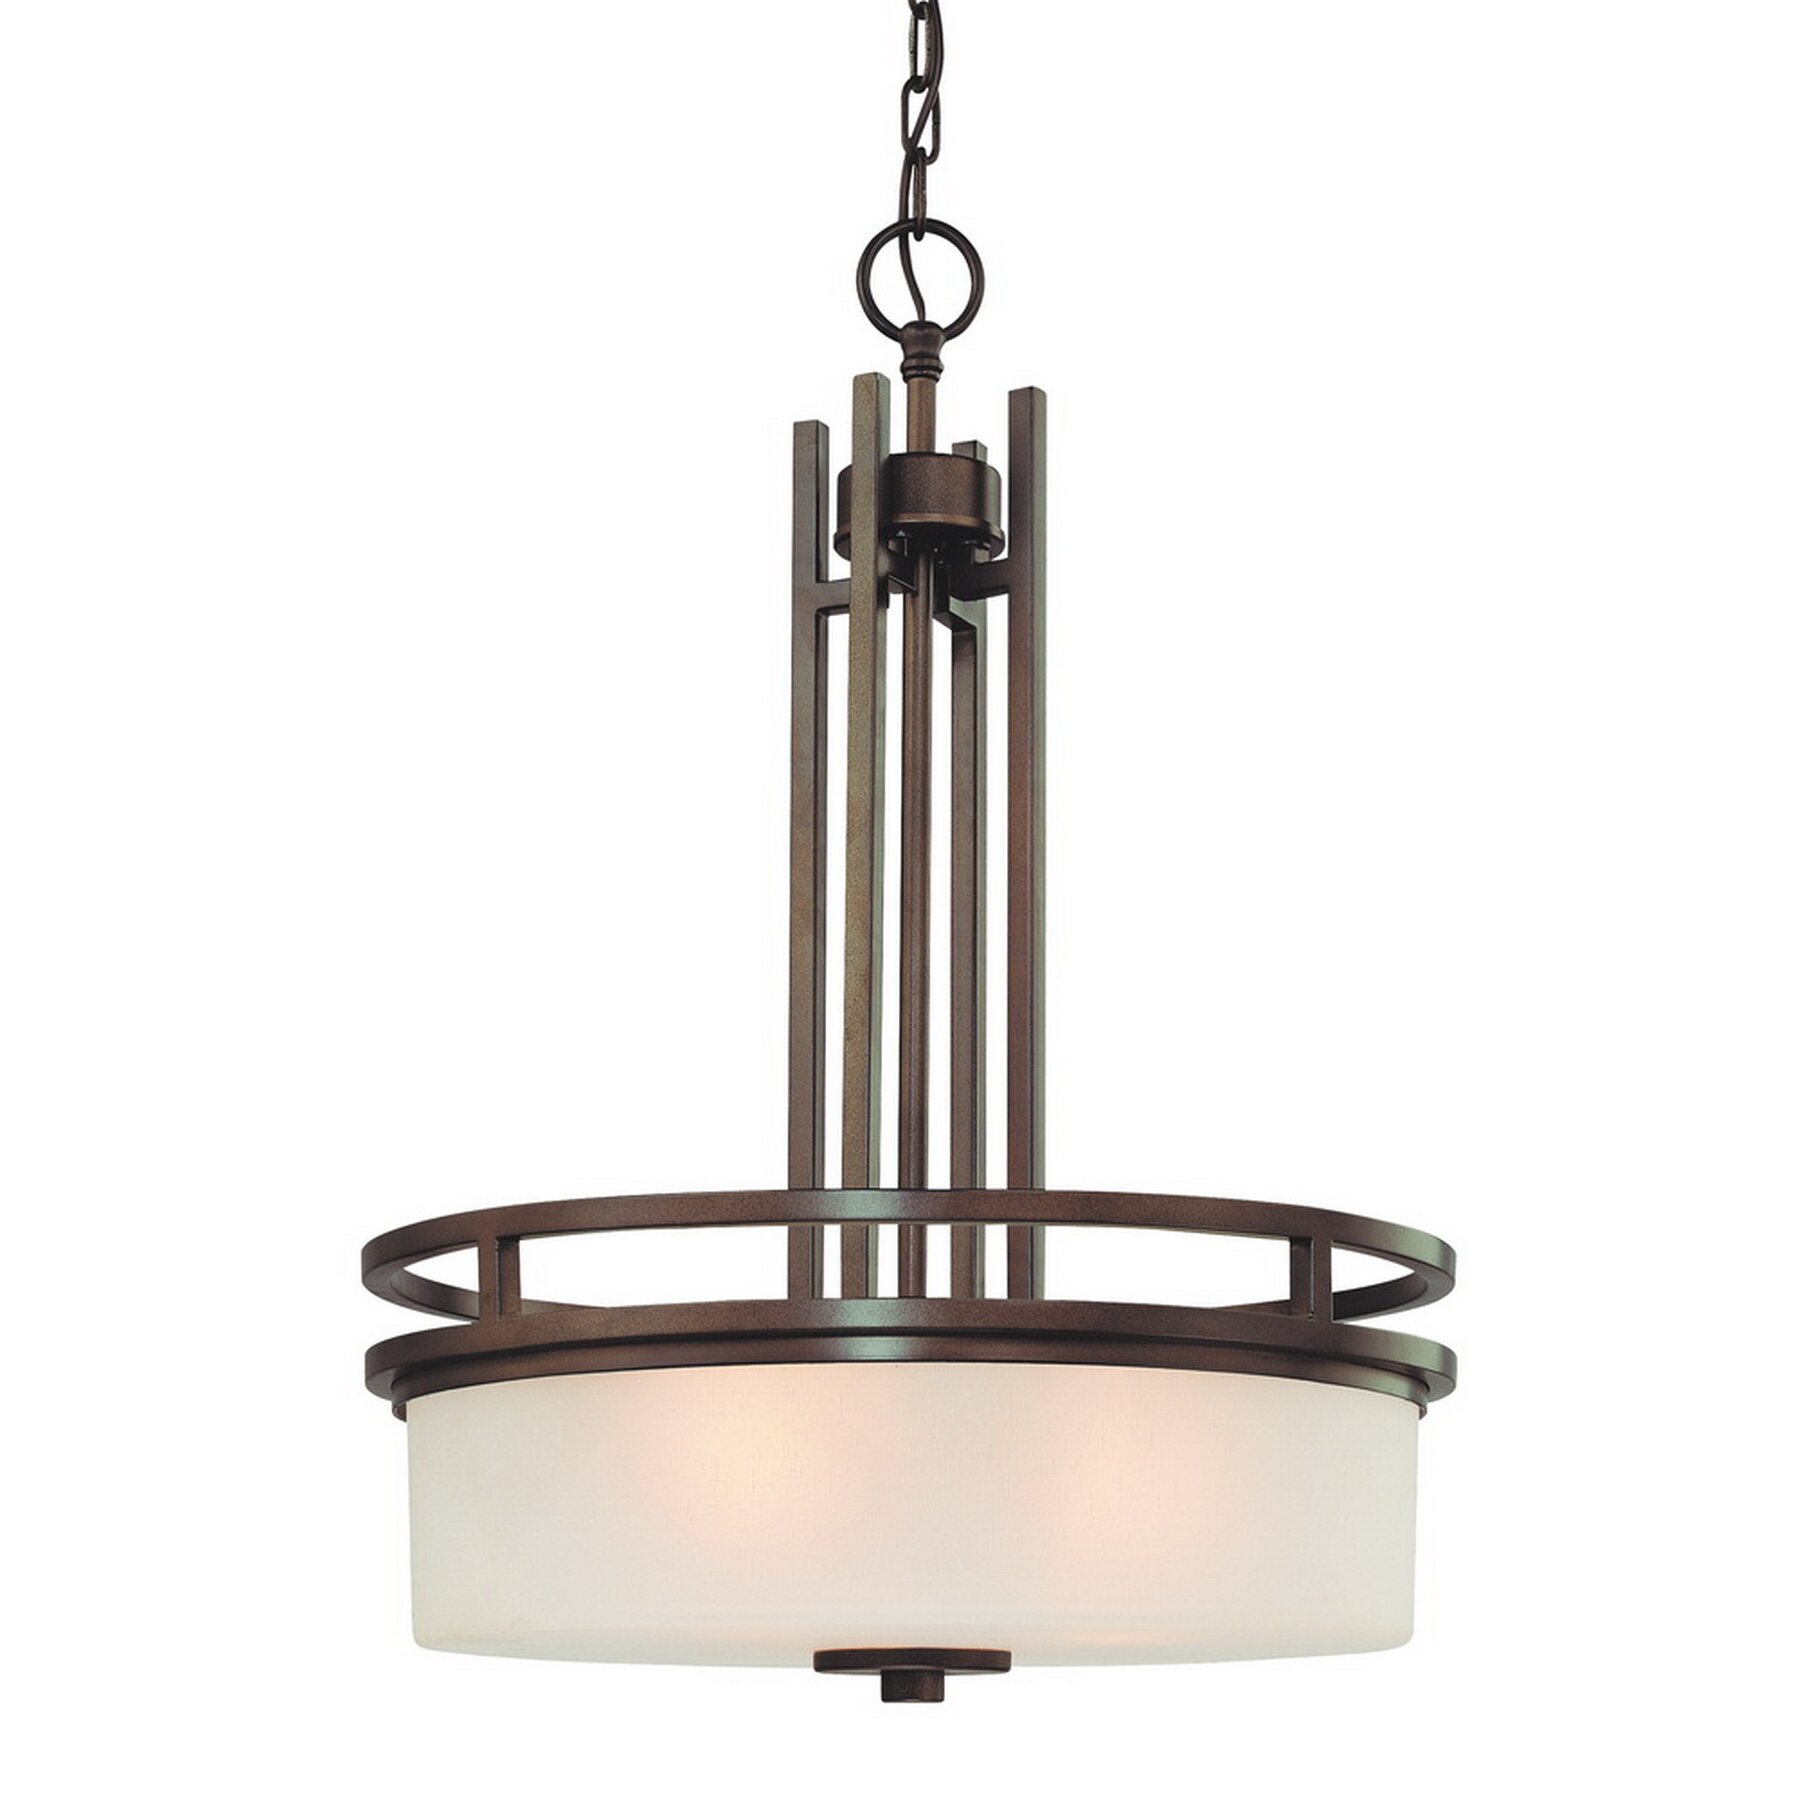 Dolan Designs Multnomah 3 Light Drum Pendant & Reviews